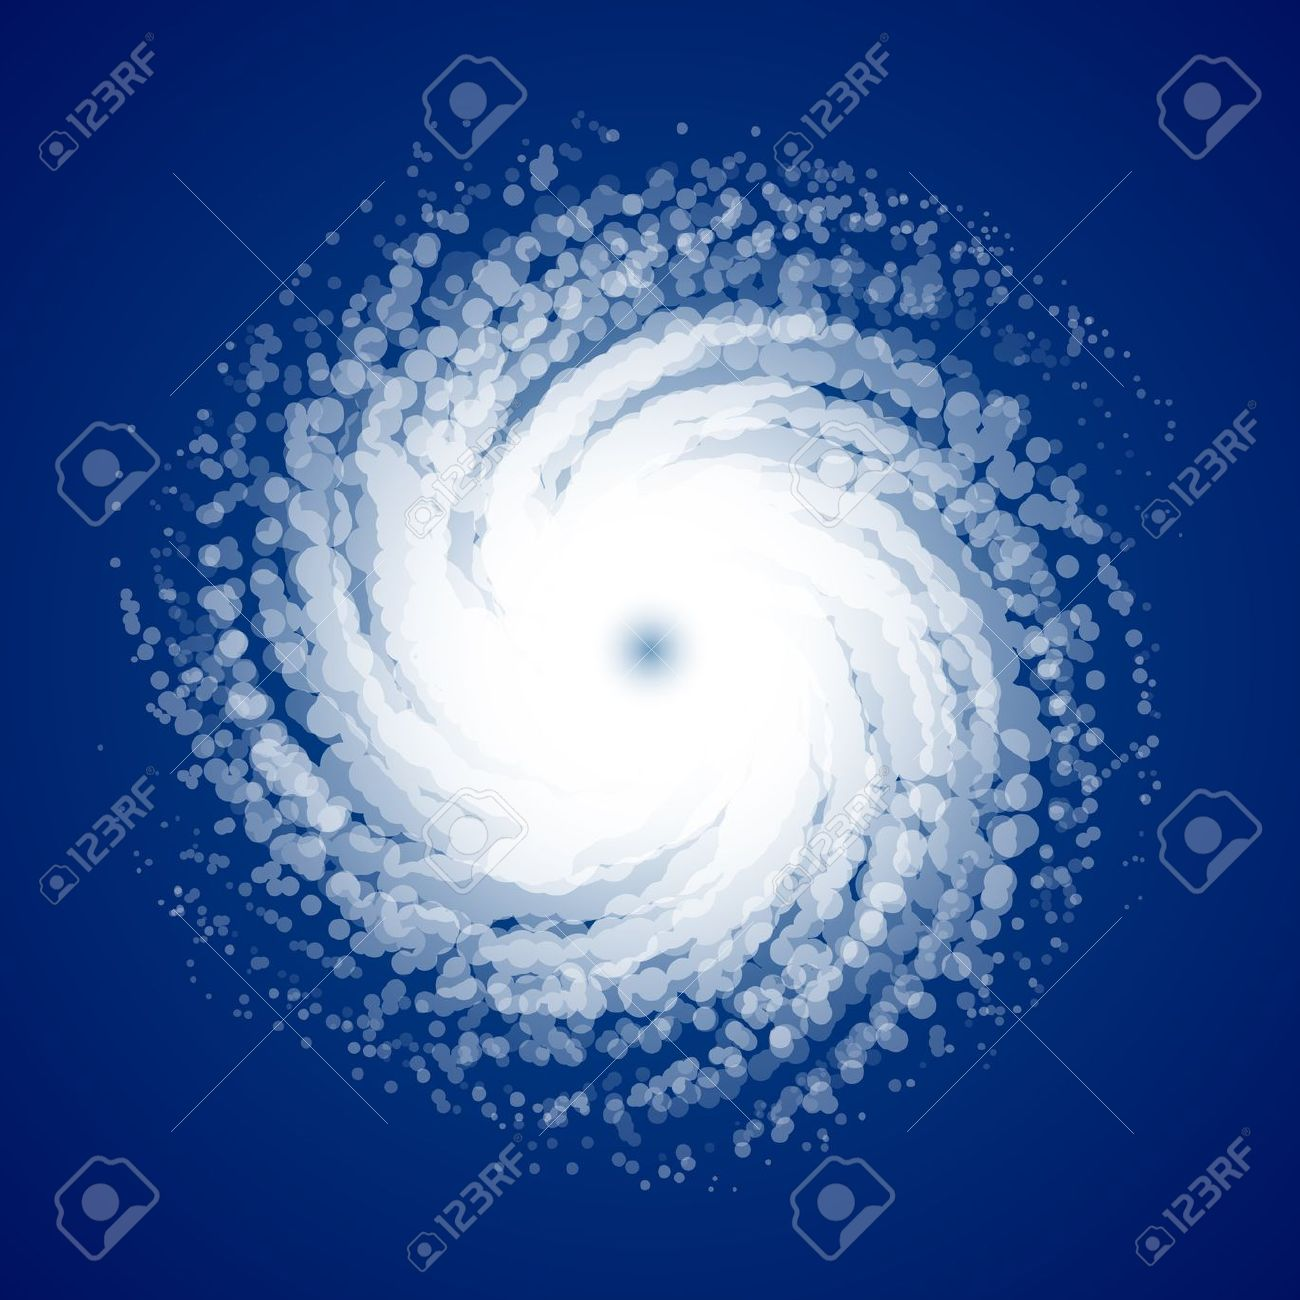 Hurricane clipart effect typhoon. Free cliparts download clip